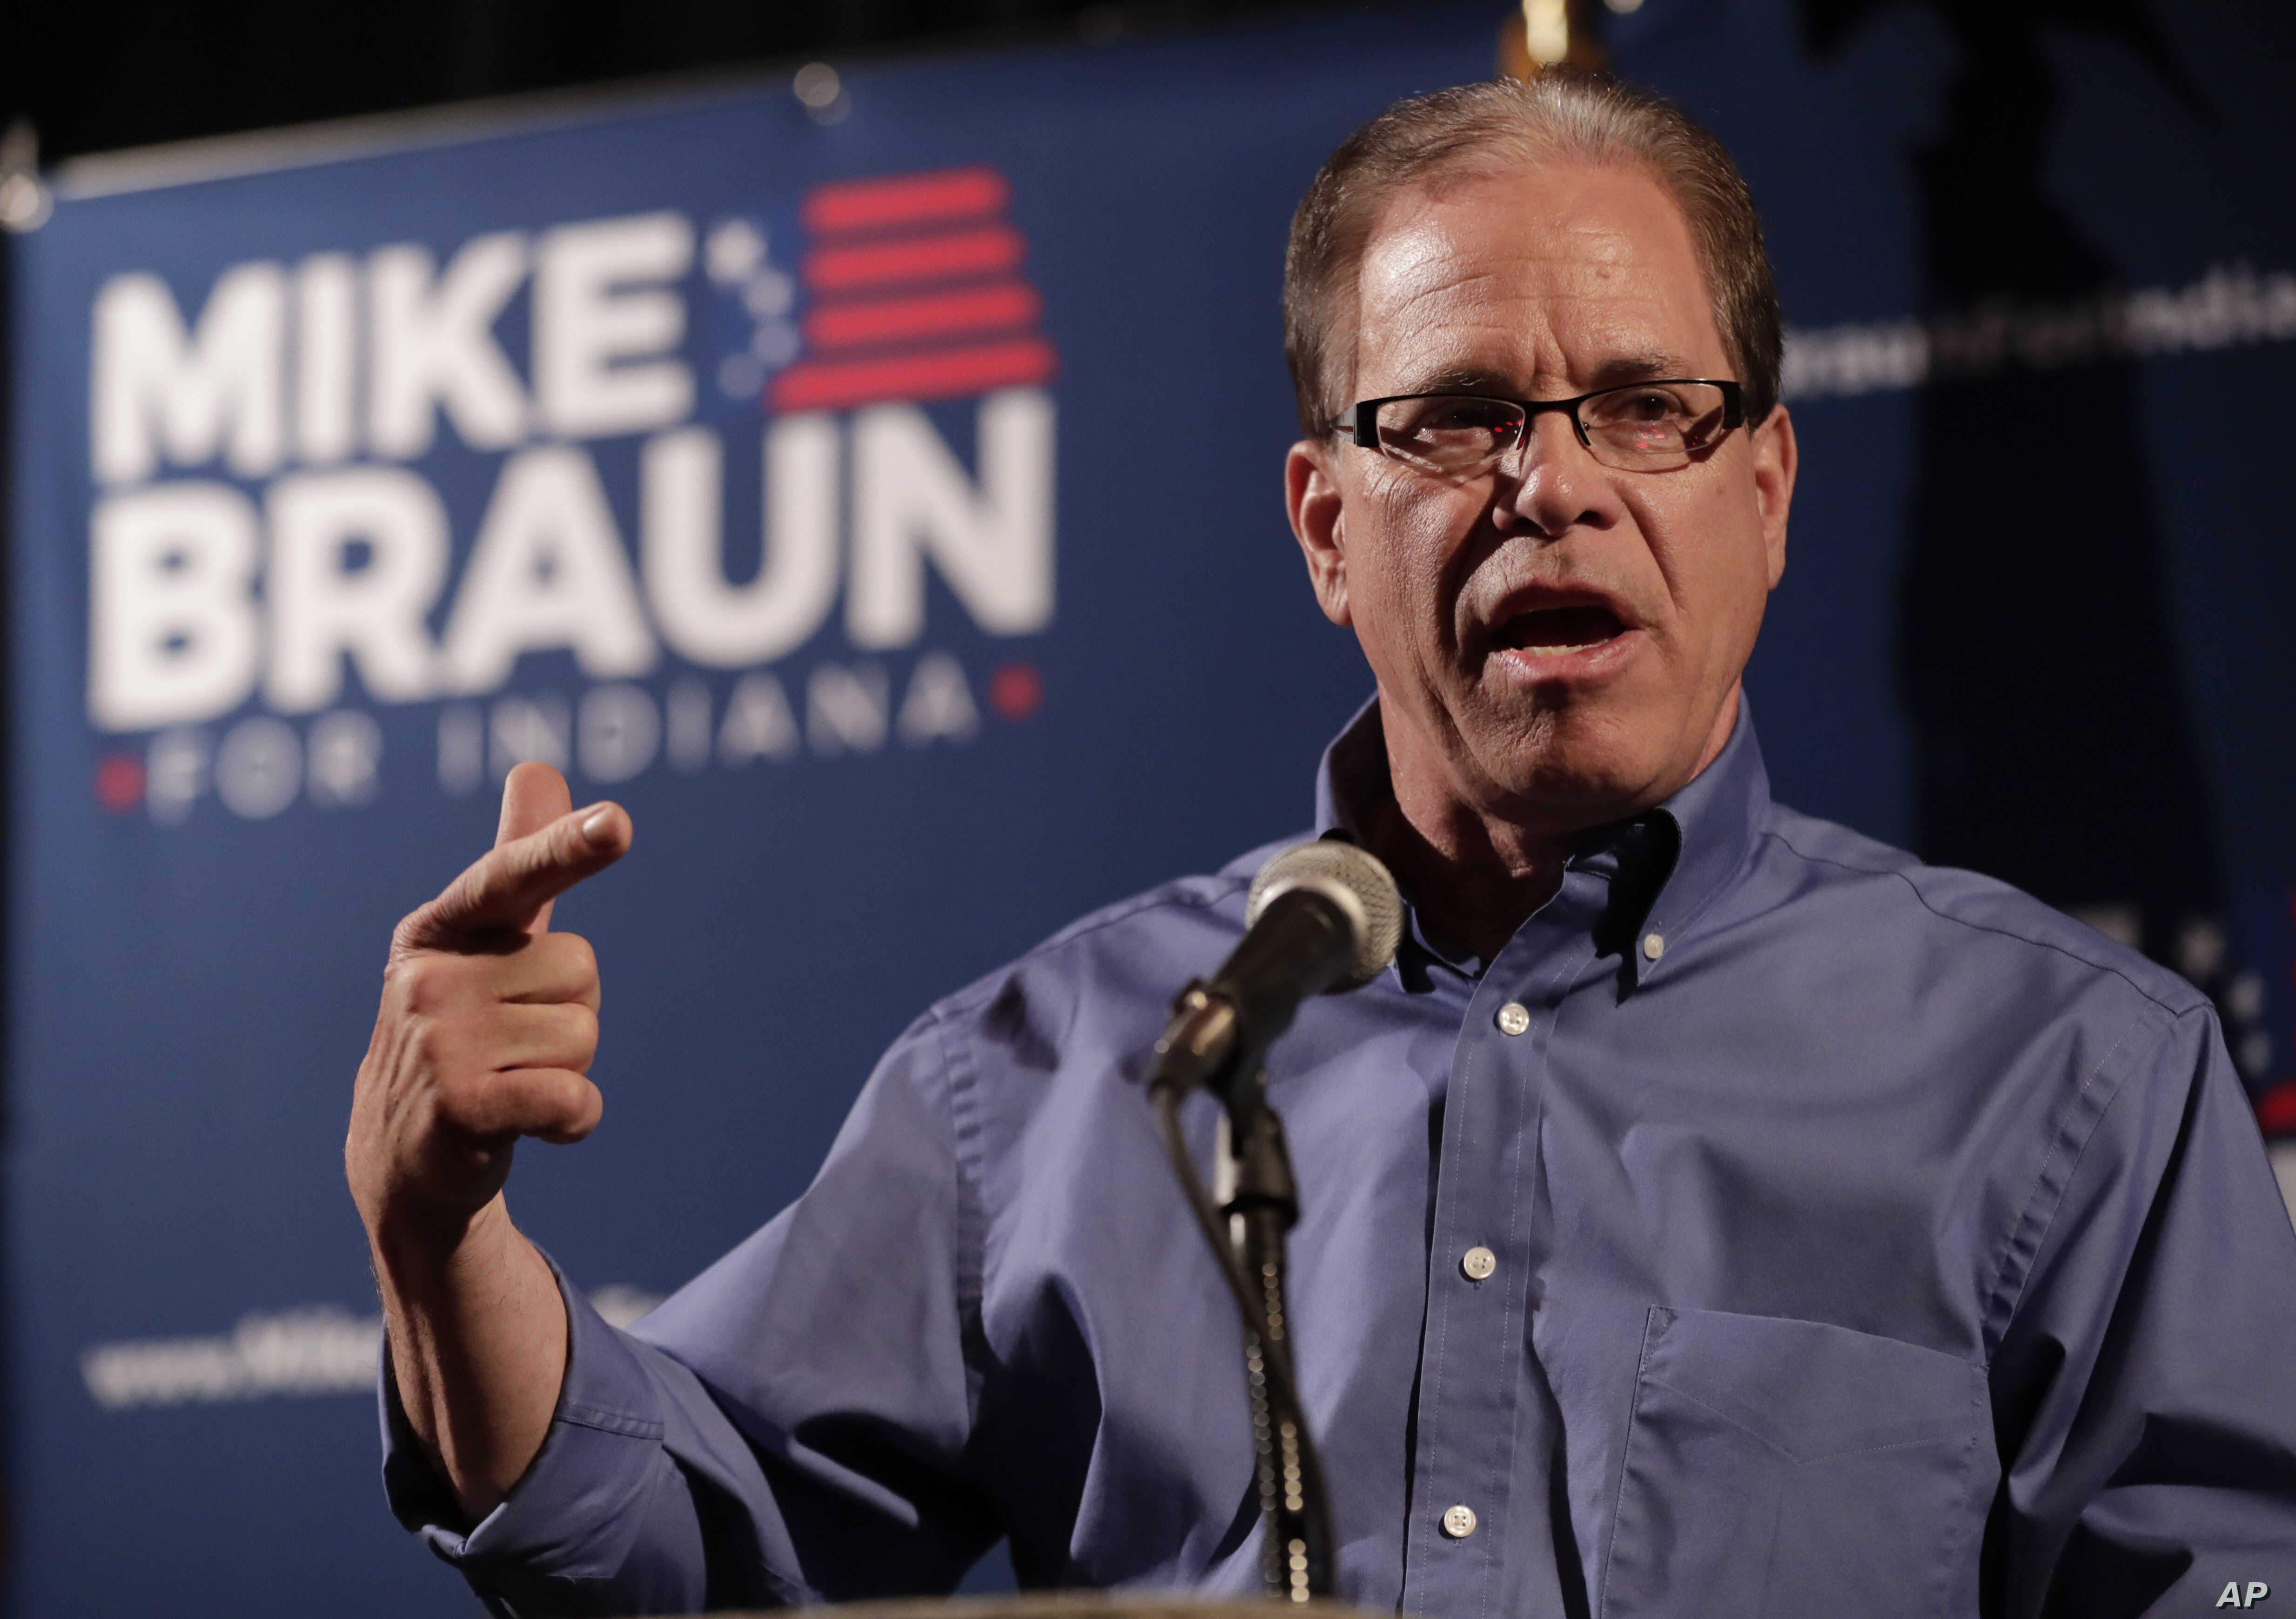 Republican Senate candidate Mike Braun thanks supporters after winning the Republican primary in Whitestown, Ind., May 8, 2018. Braun advances to a November matchup with Democrat Joe Donnelly, who is considered one of the Senate's most vulnerable inc...